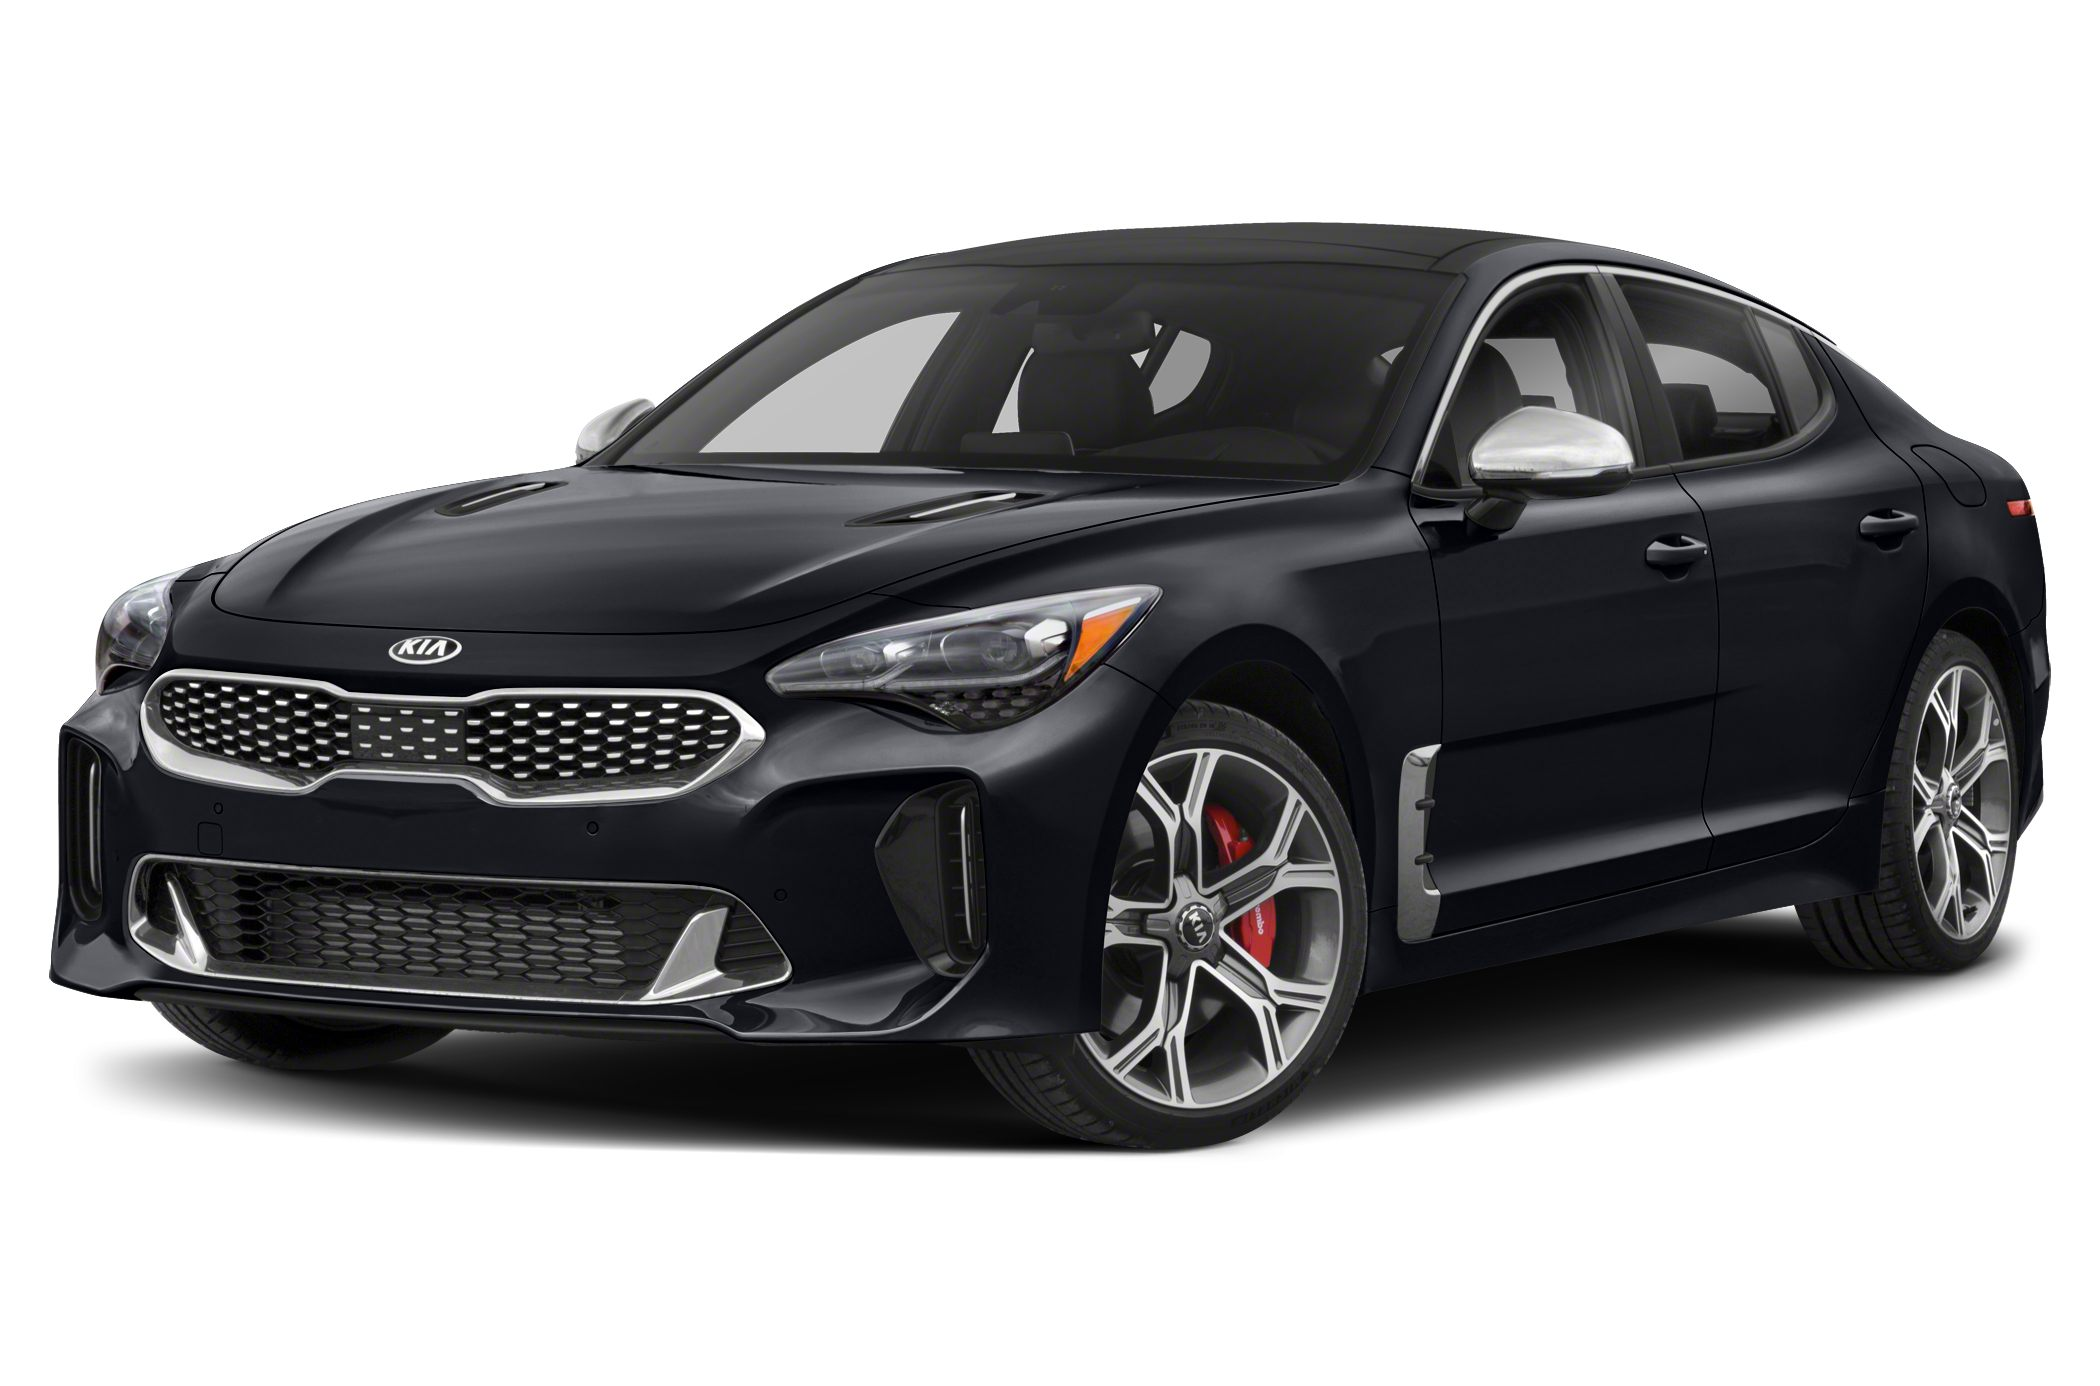 2020 Kia Stinger Gt 4dr Rear Wheel Drive Sedan Specs And Prices